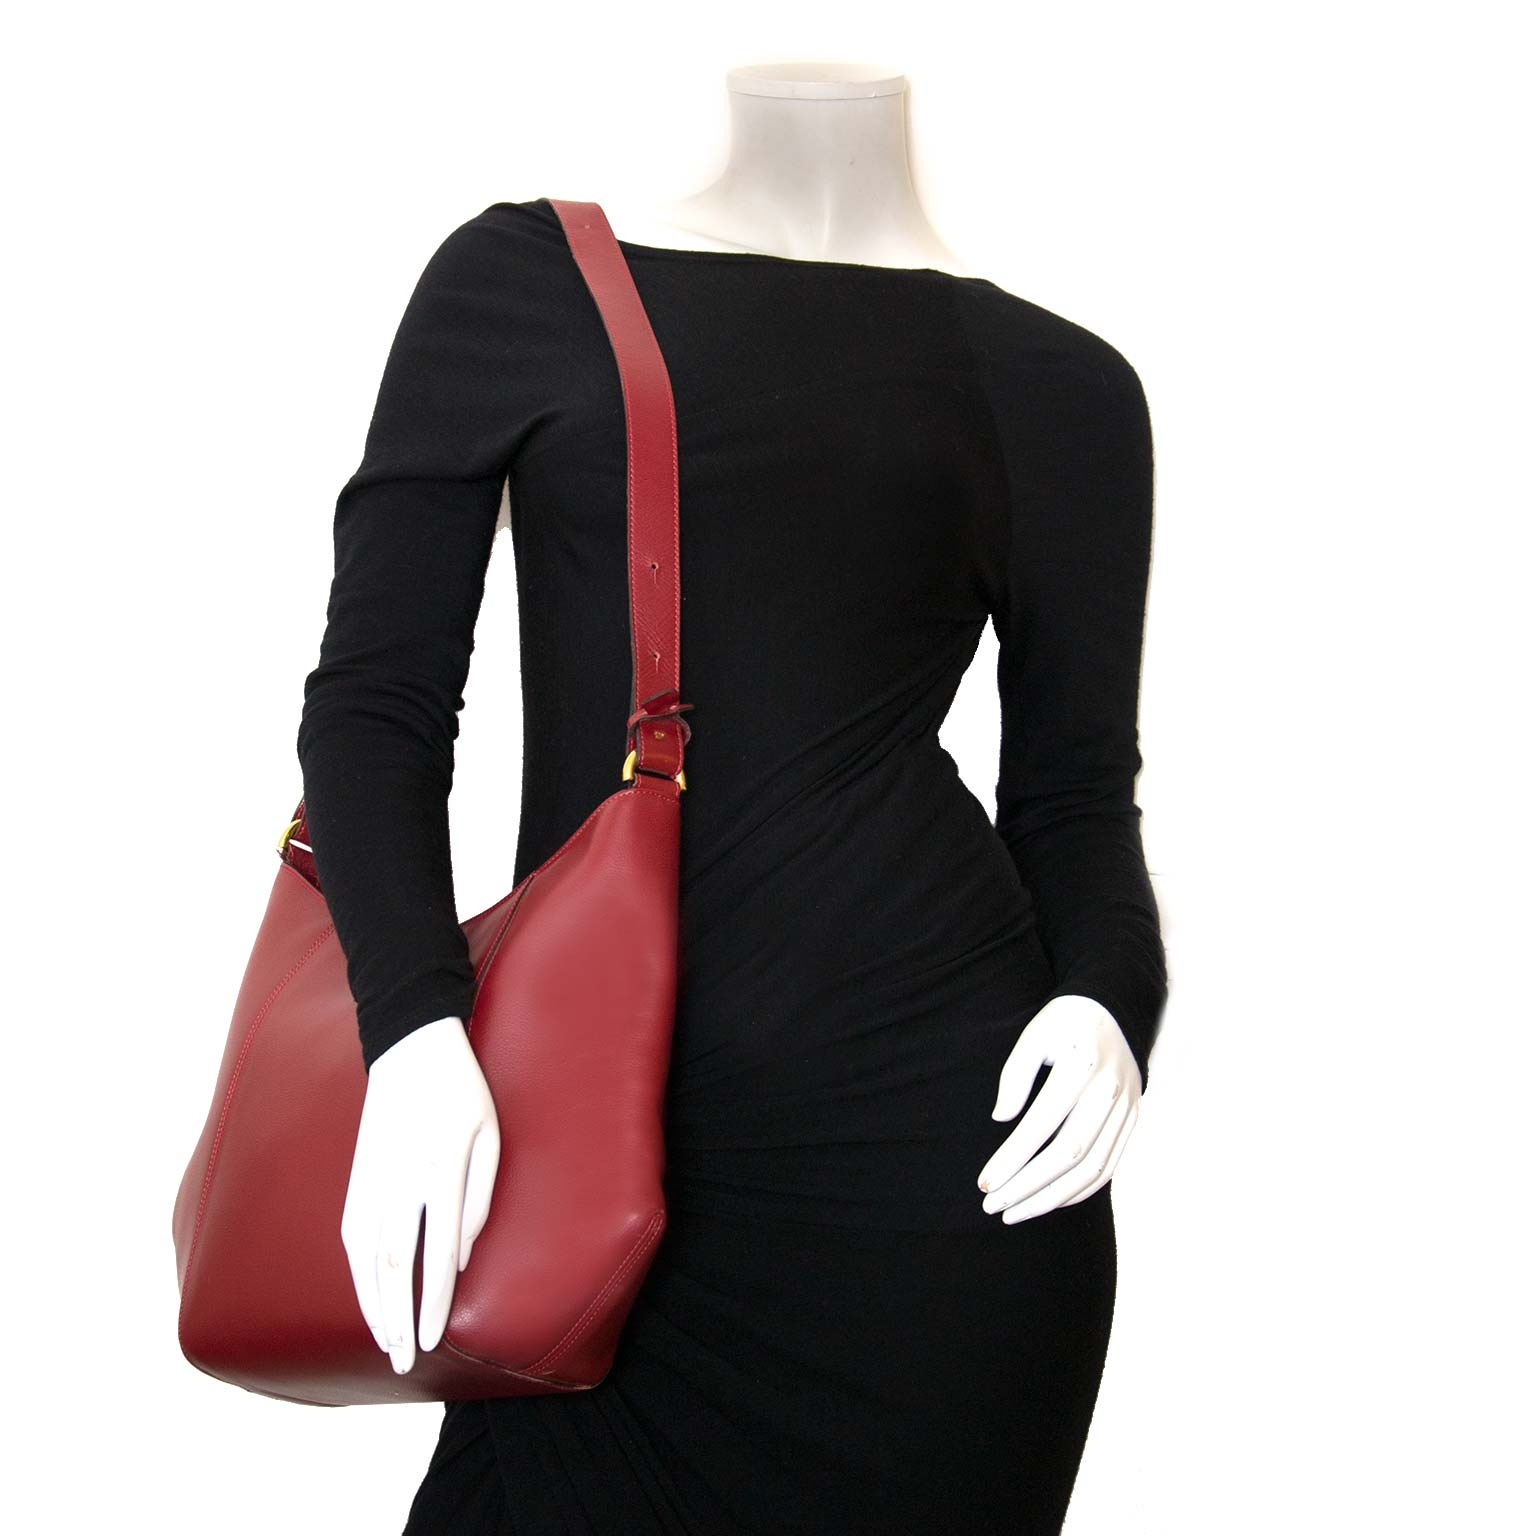 delvaux souhait jumping rosso shoulder bag now for sale at labellov vintage fashion webshop belgium